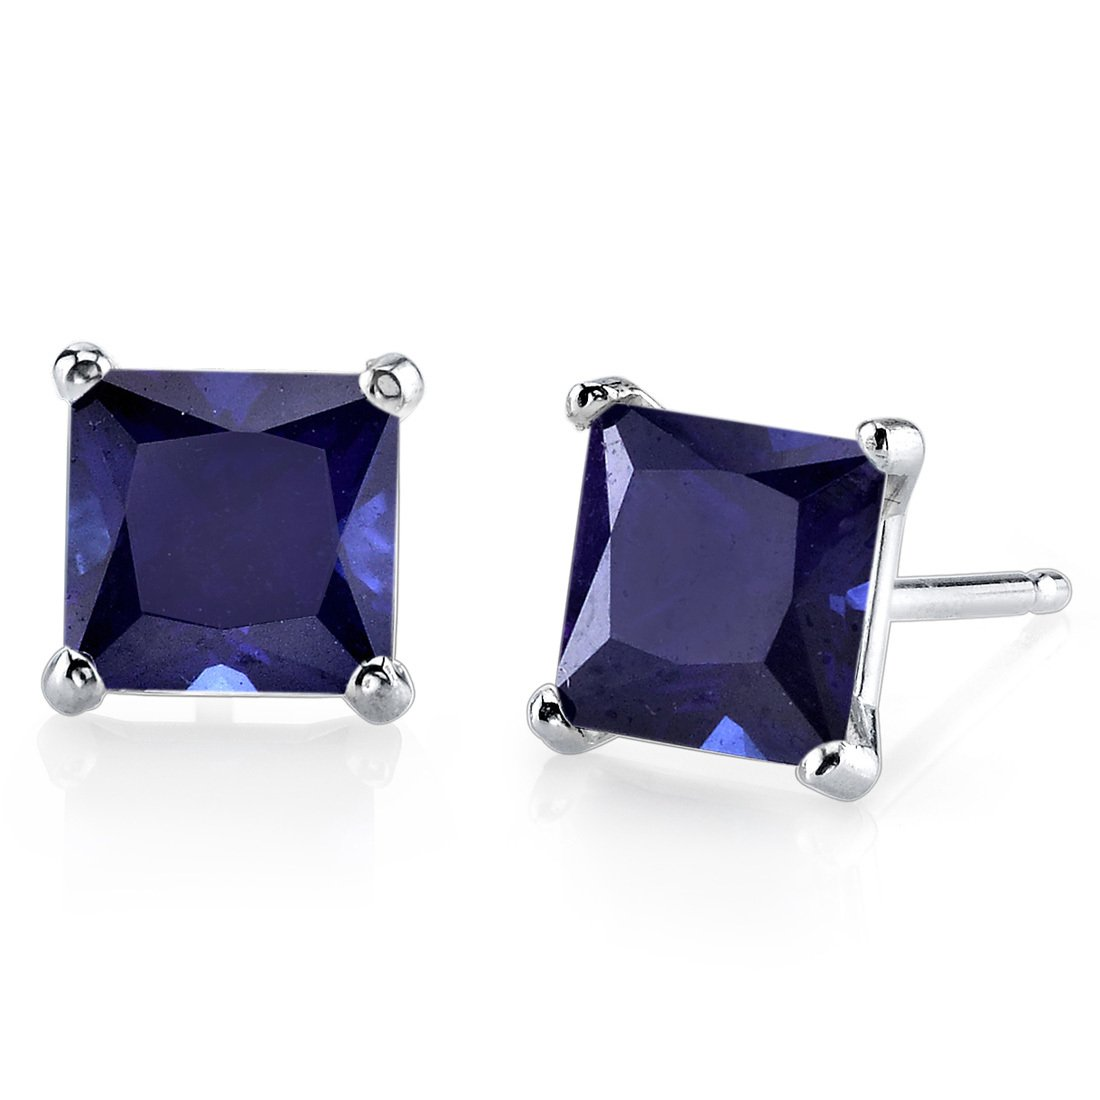 14K 14ct White Gold 2 Ct Lab Blue Sapphire Stud Earrings Princess Cut 6 x 6 mm